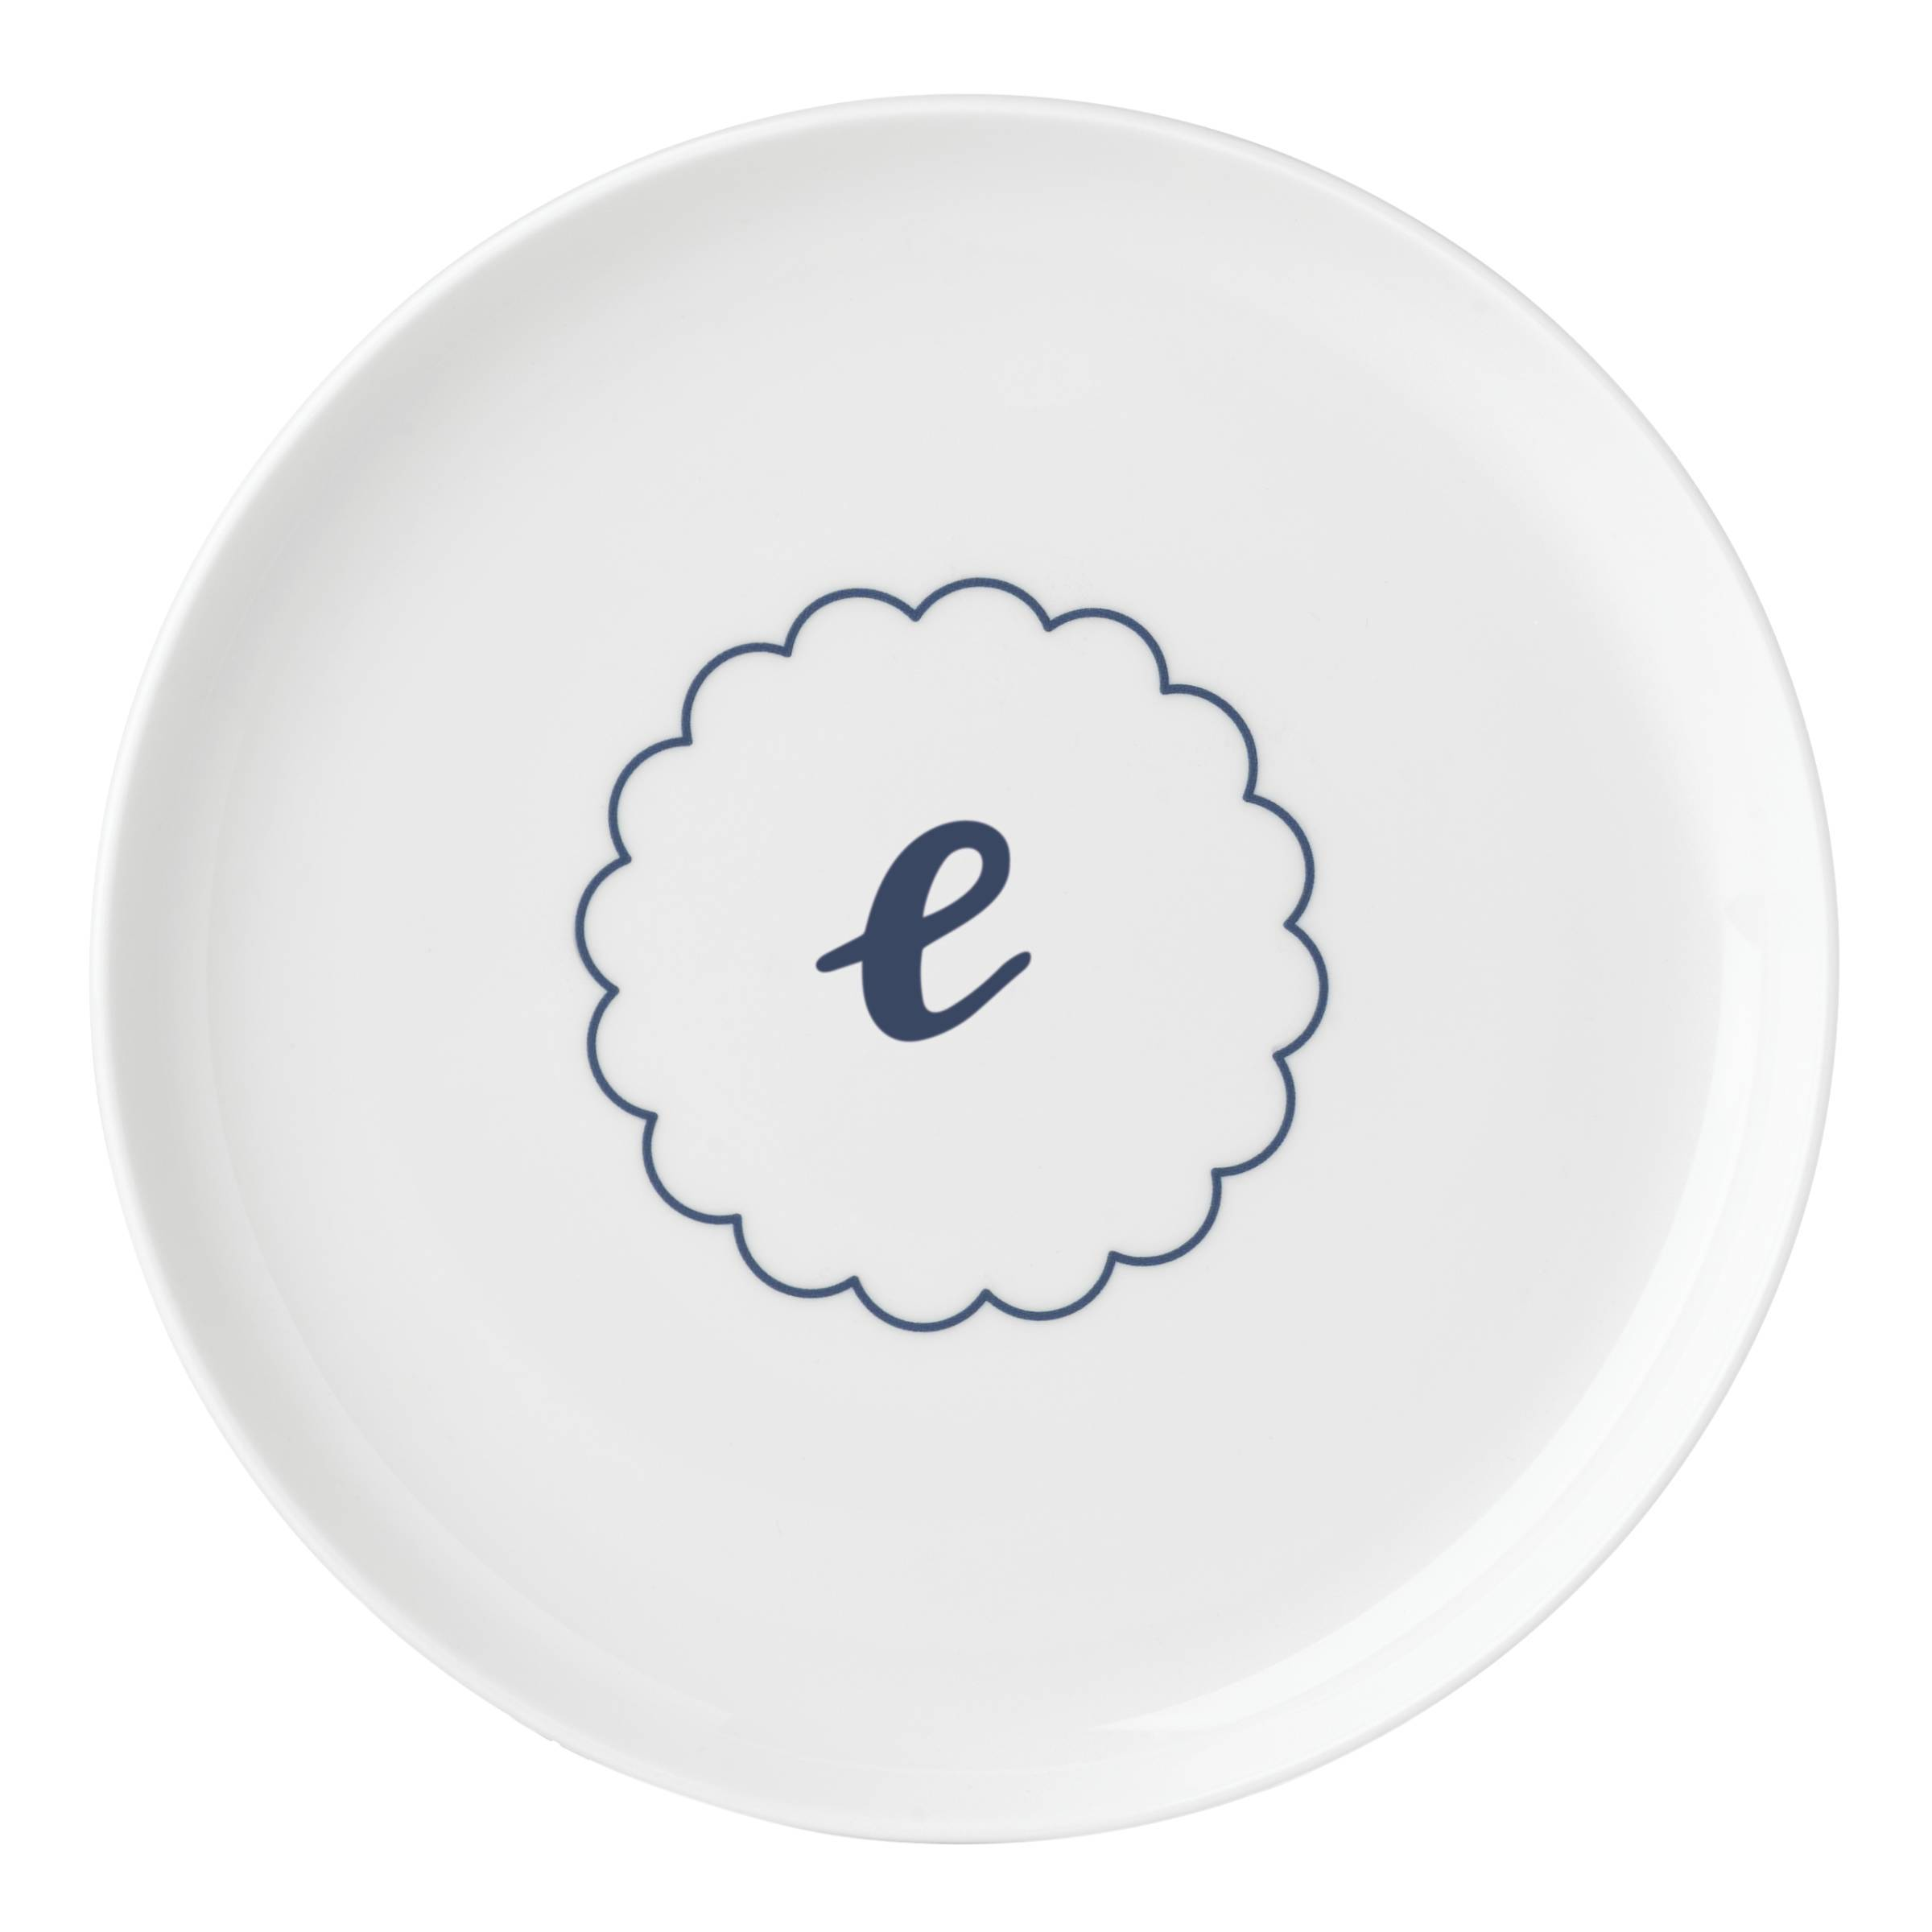 7859f066a69 Shop Lenox I.D. Navy Scallop Accent Plate - Free Shipping On Orders Over   45 - Overstock - 16602609